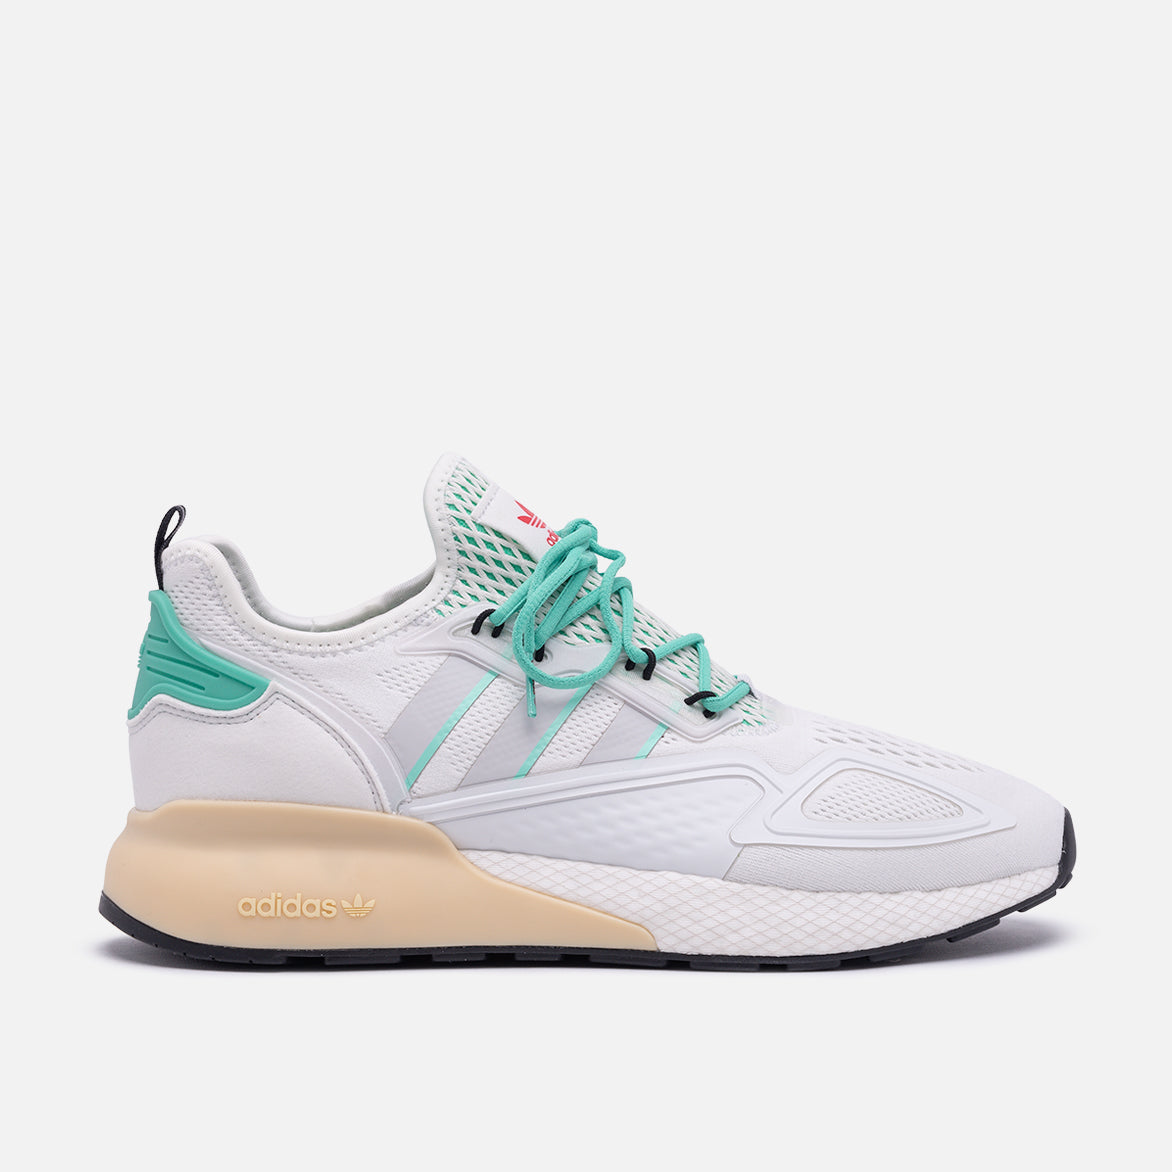 ZX 2K BOOST - CRYSTAL WHITE / GREY ONE / HI-RES GREEN